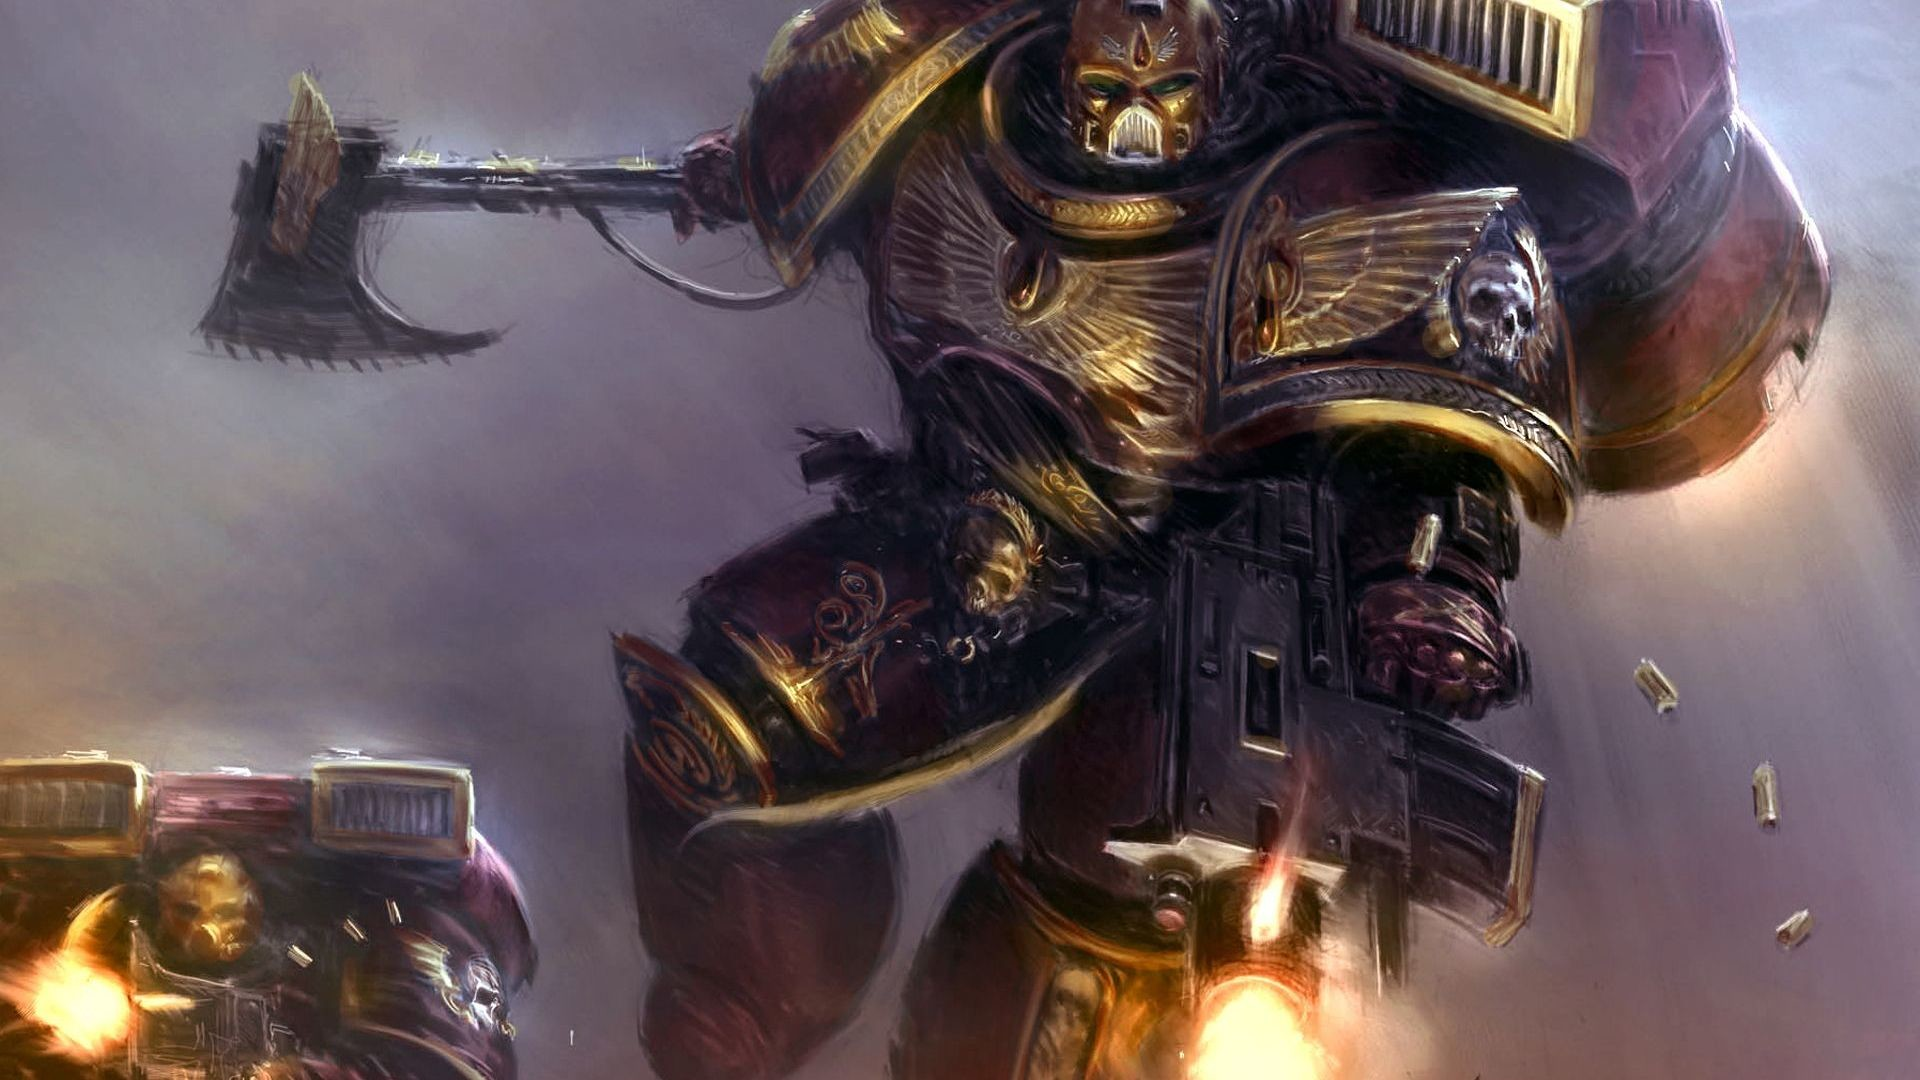 So you want to play Warhammer 40k? Pick an army!